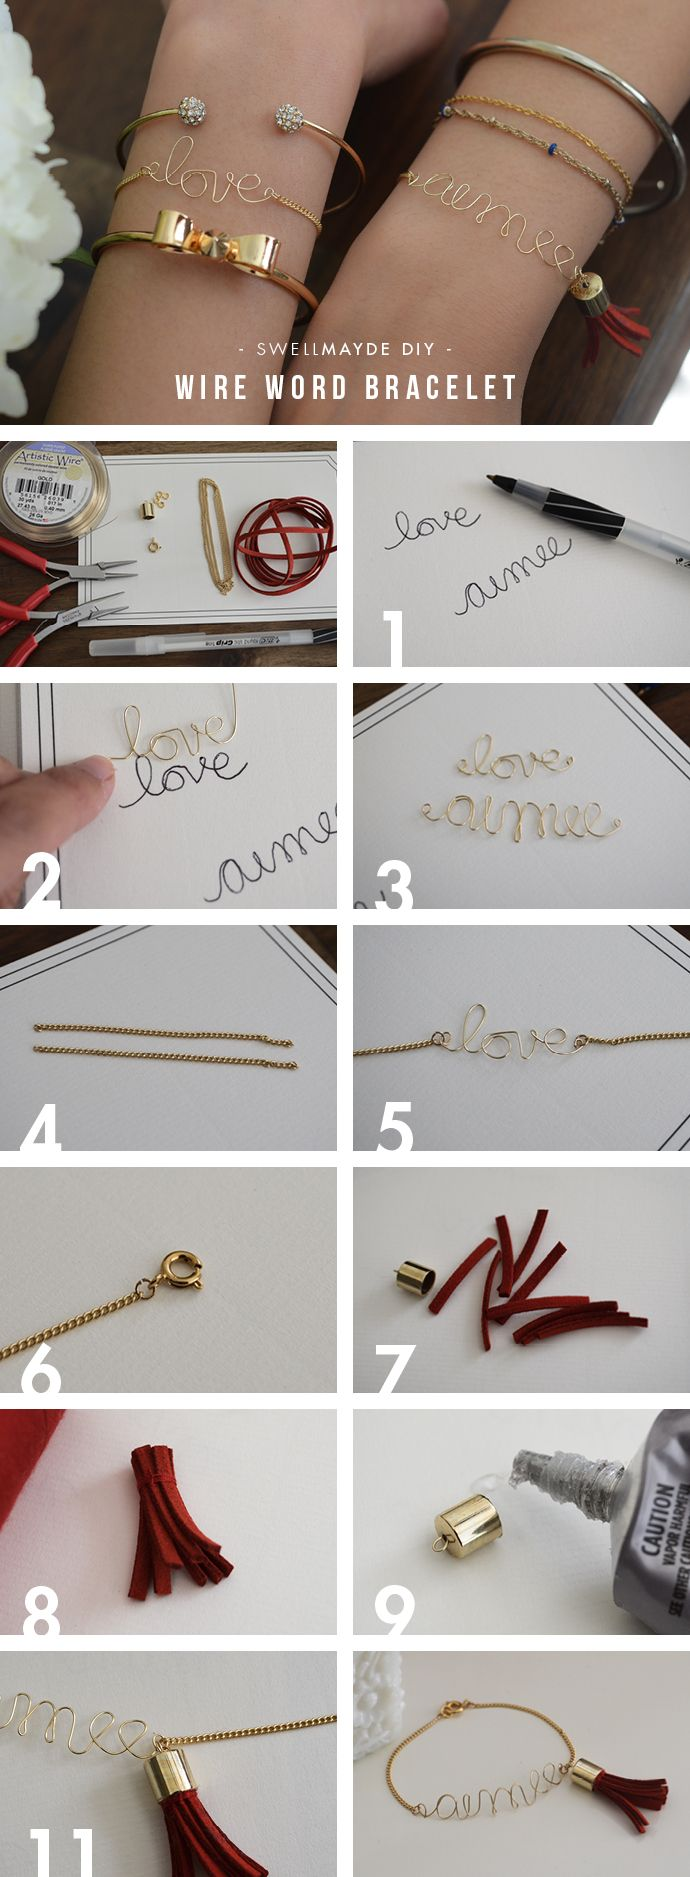 swellmayde: DIY | WIRE LOVE / NAME BRACELET WITH TASSEL... Great pre-graduation project.